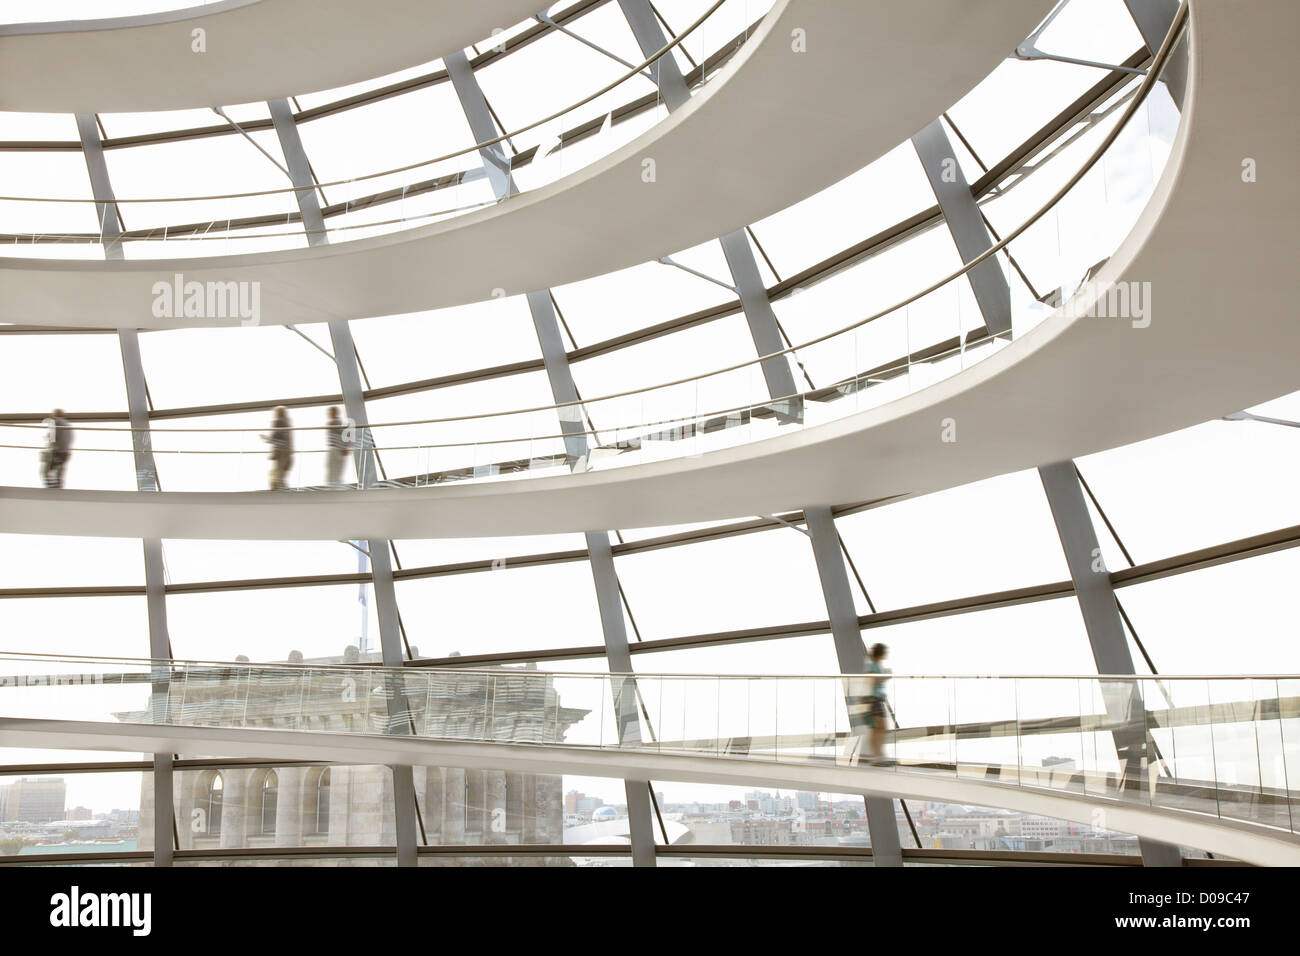 Reichstag Dome interior, Berlin modern architecture by Norman Foster - Stock Image